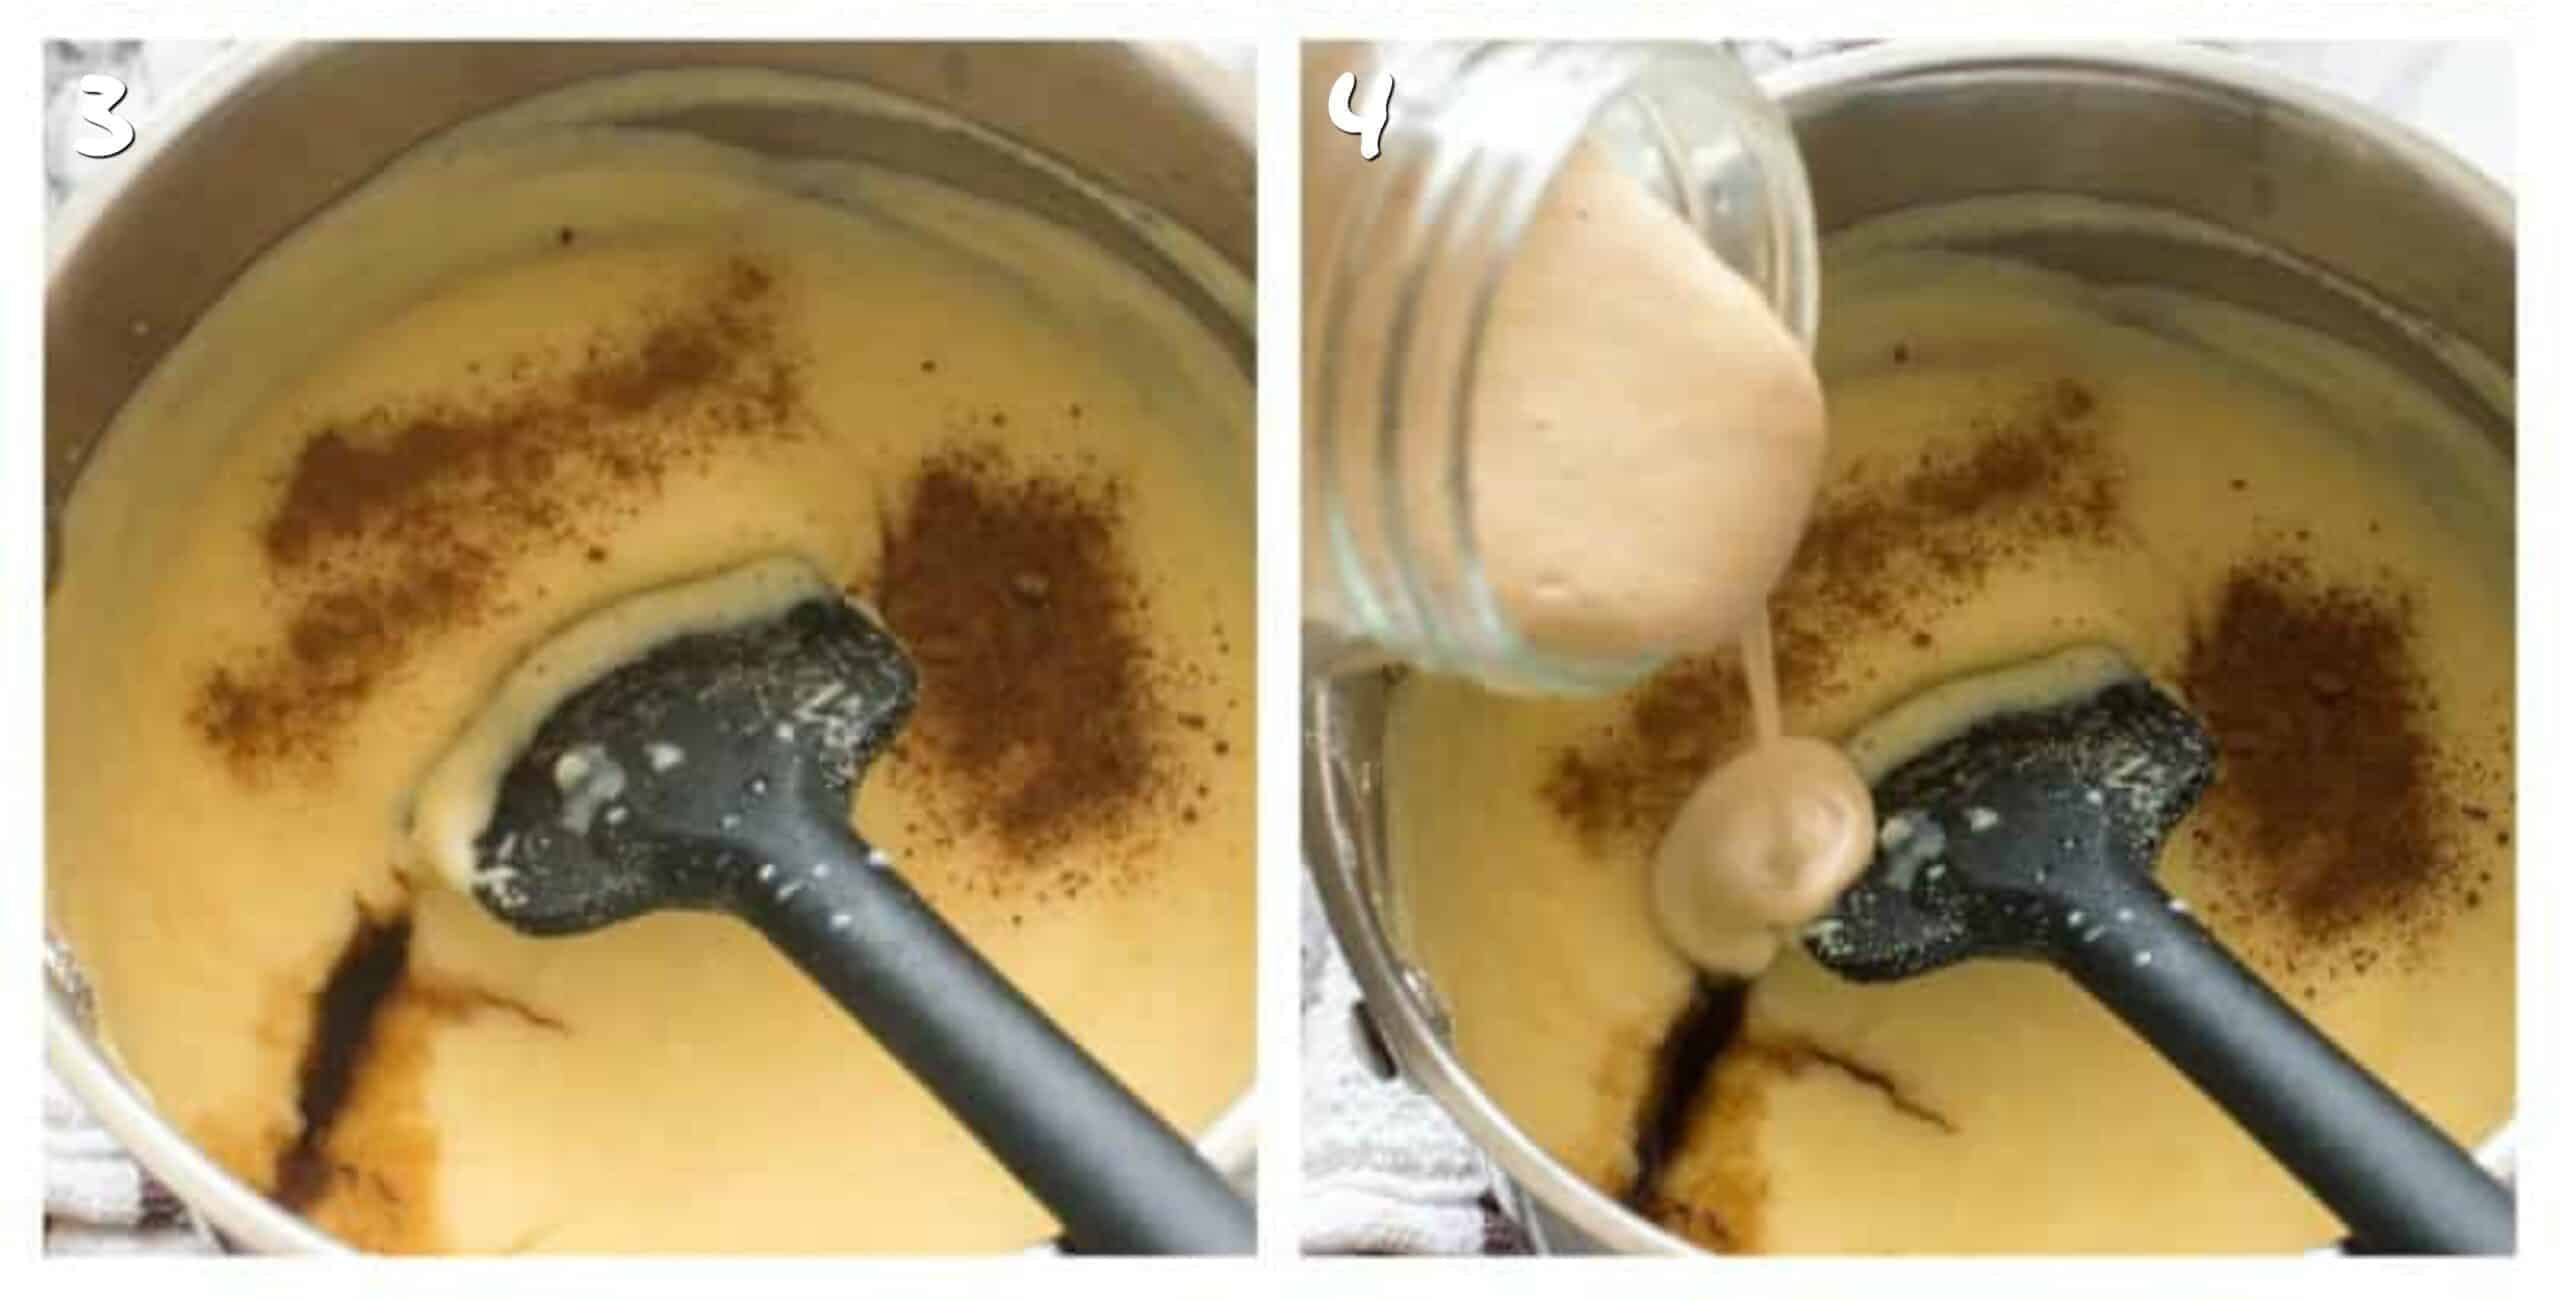 steps 3-4 adding condensed milk to the cornmeal